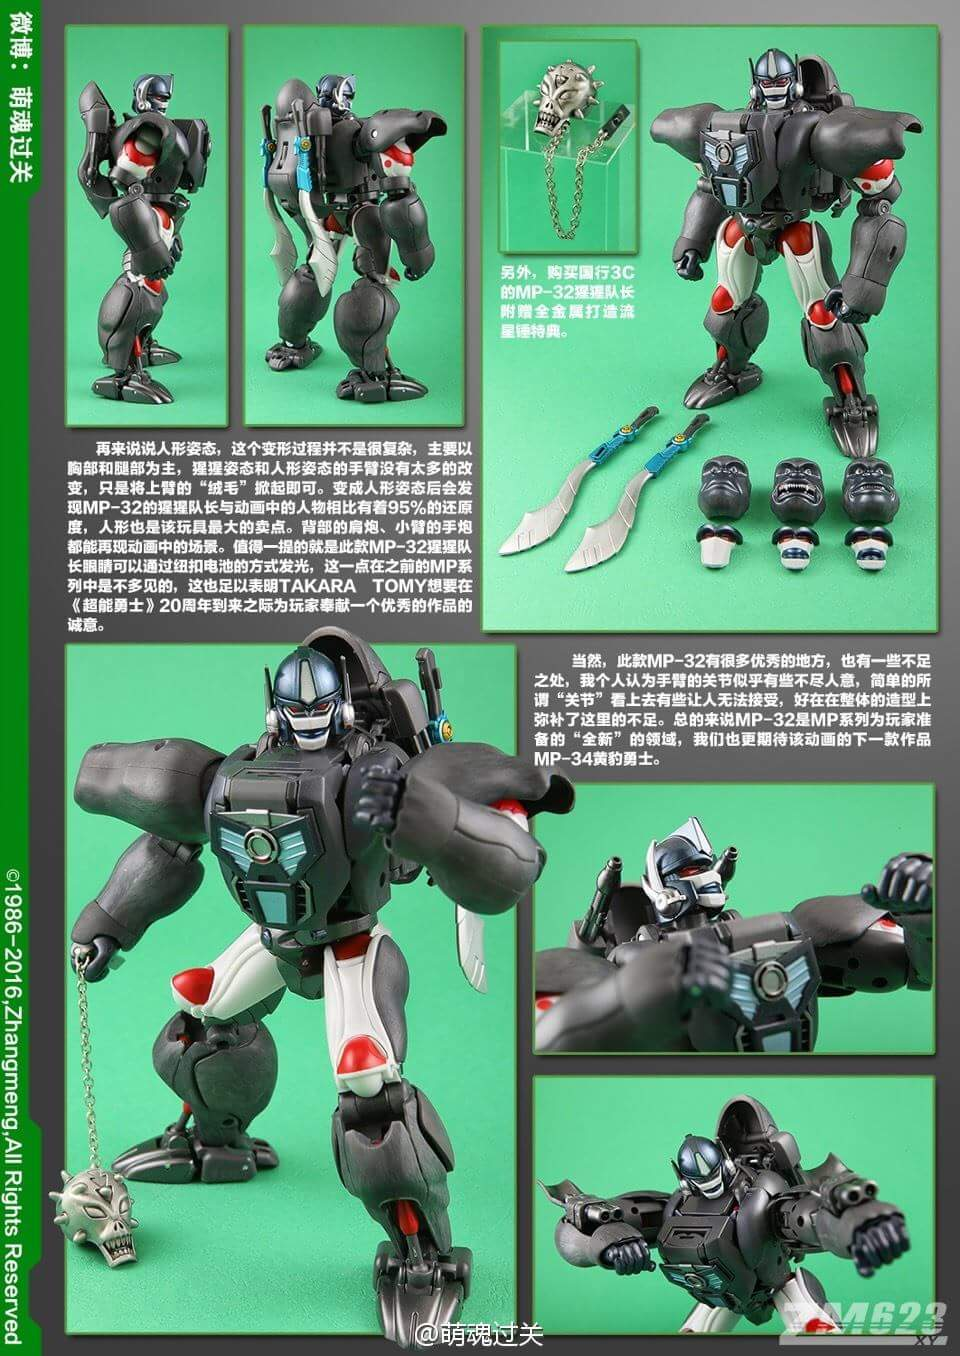 [Masterpiece] MP-32, MP-38 Optimus Primal et MP-38+ Burning Convoy (Beast Wars) - Page 3 P4A4pFn8